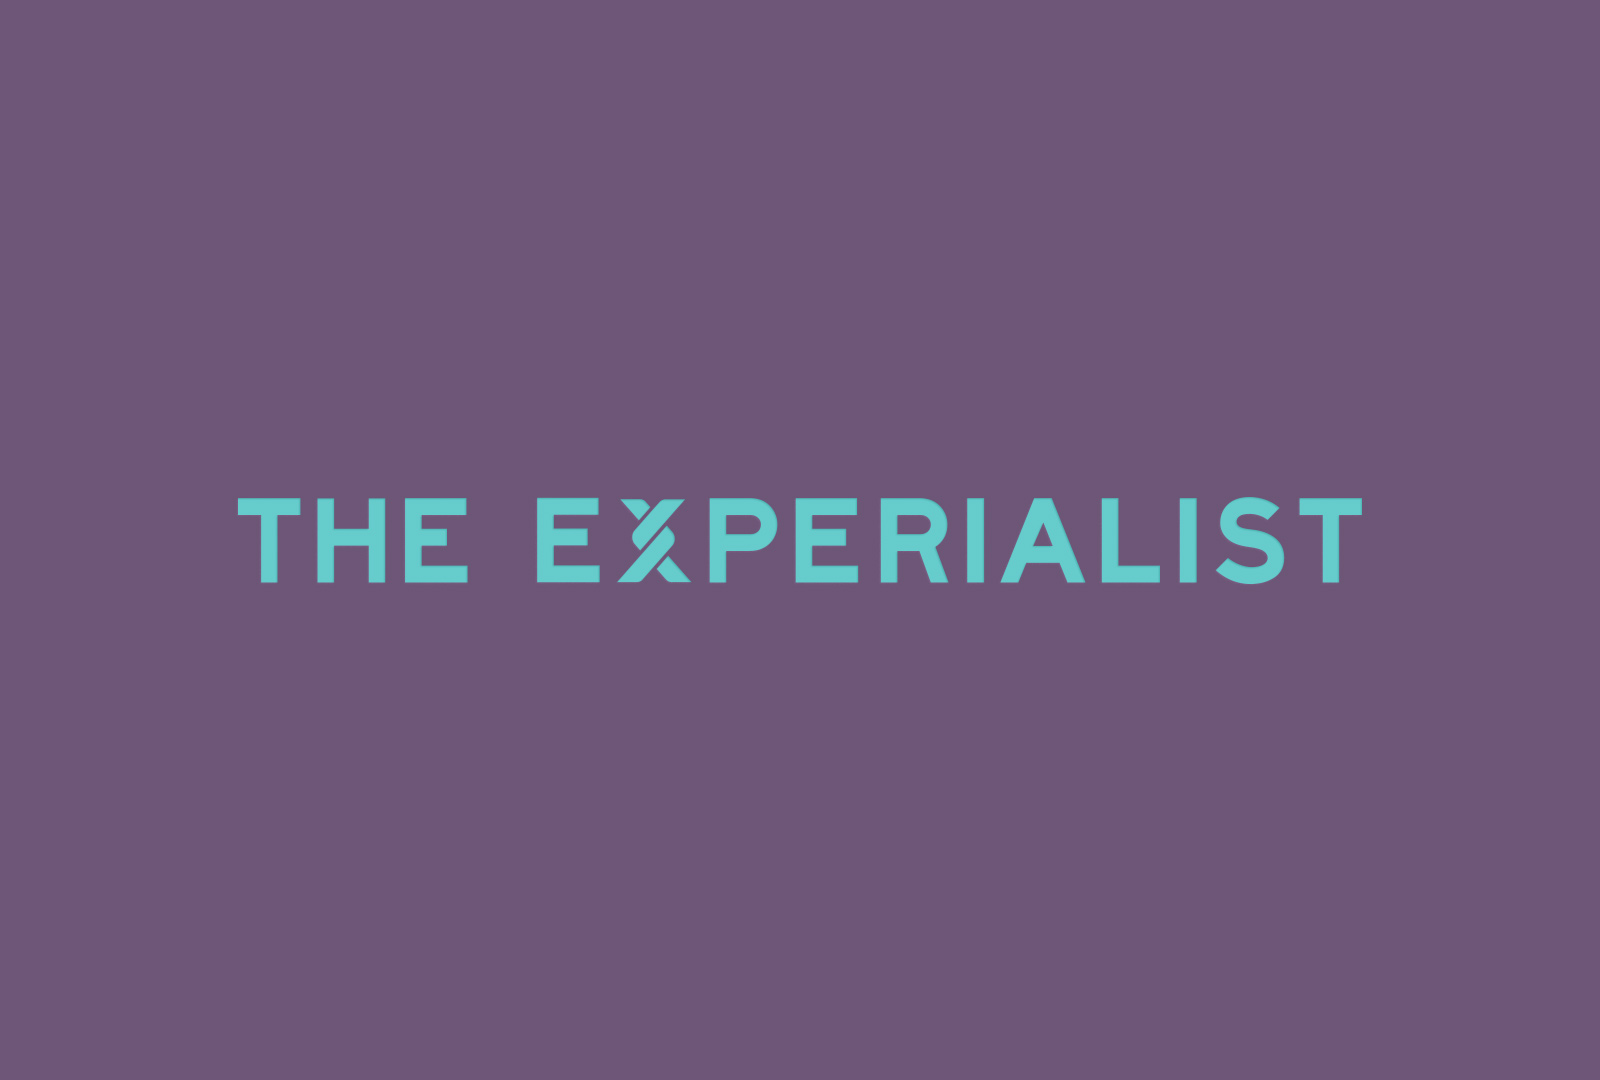 THE-EXPERIALIST-1600108001